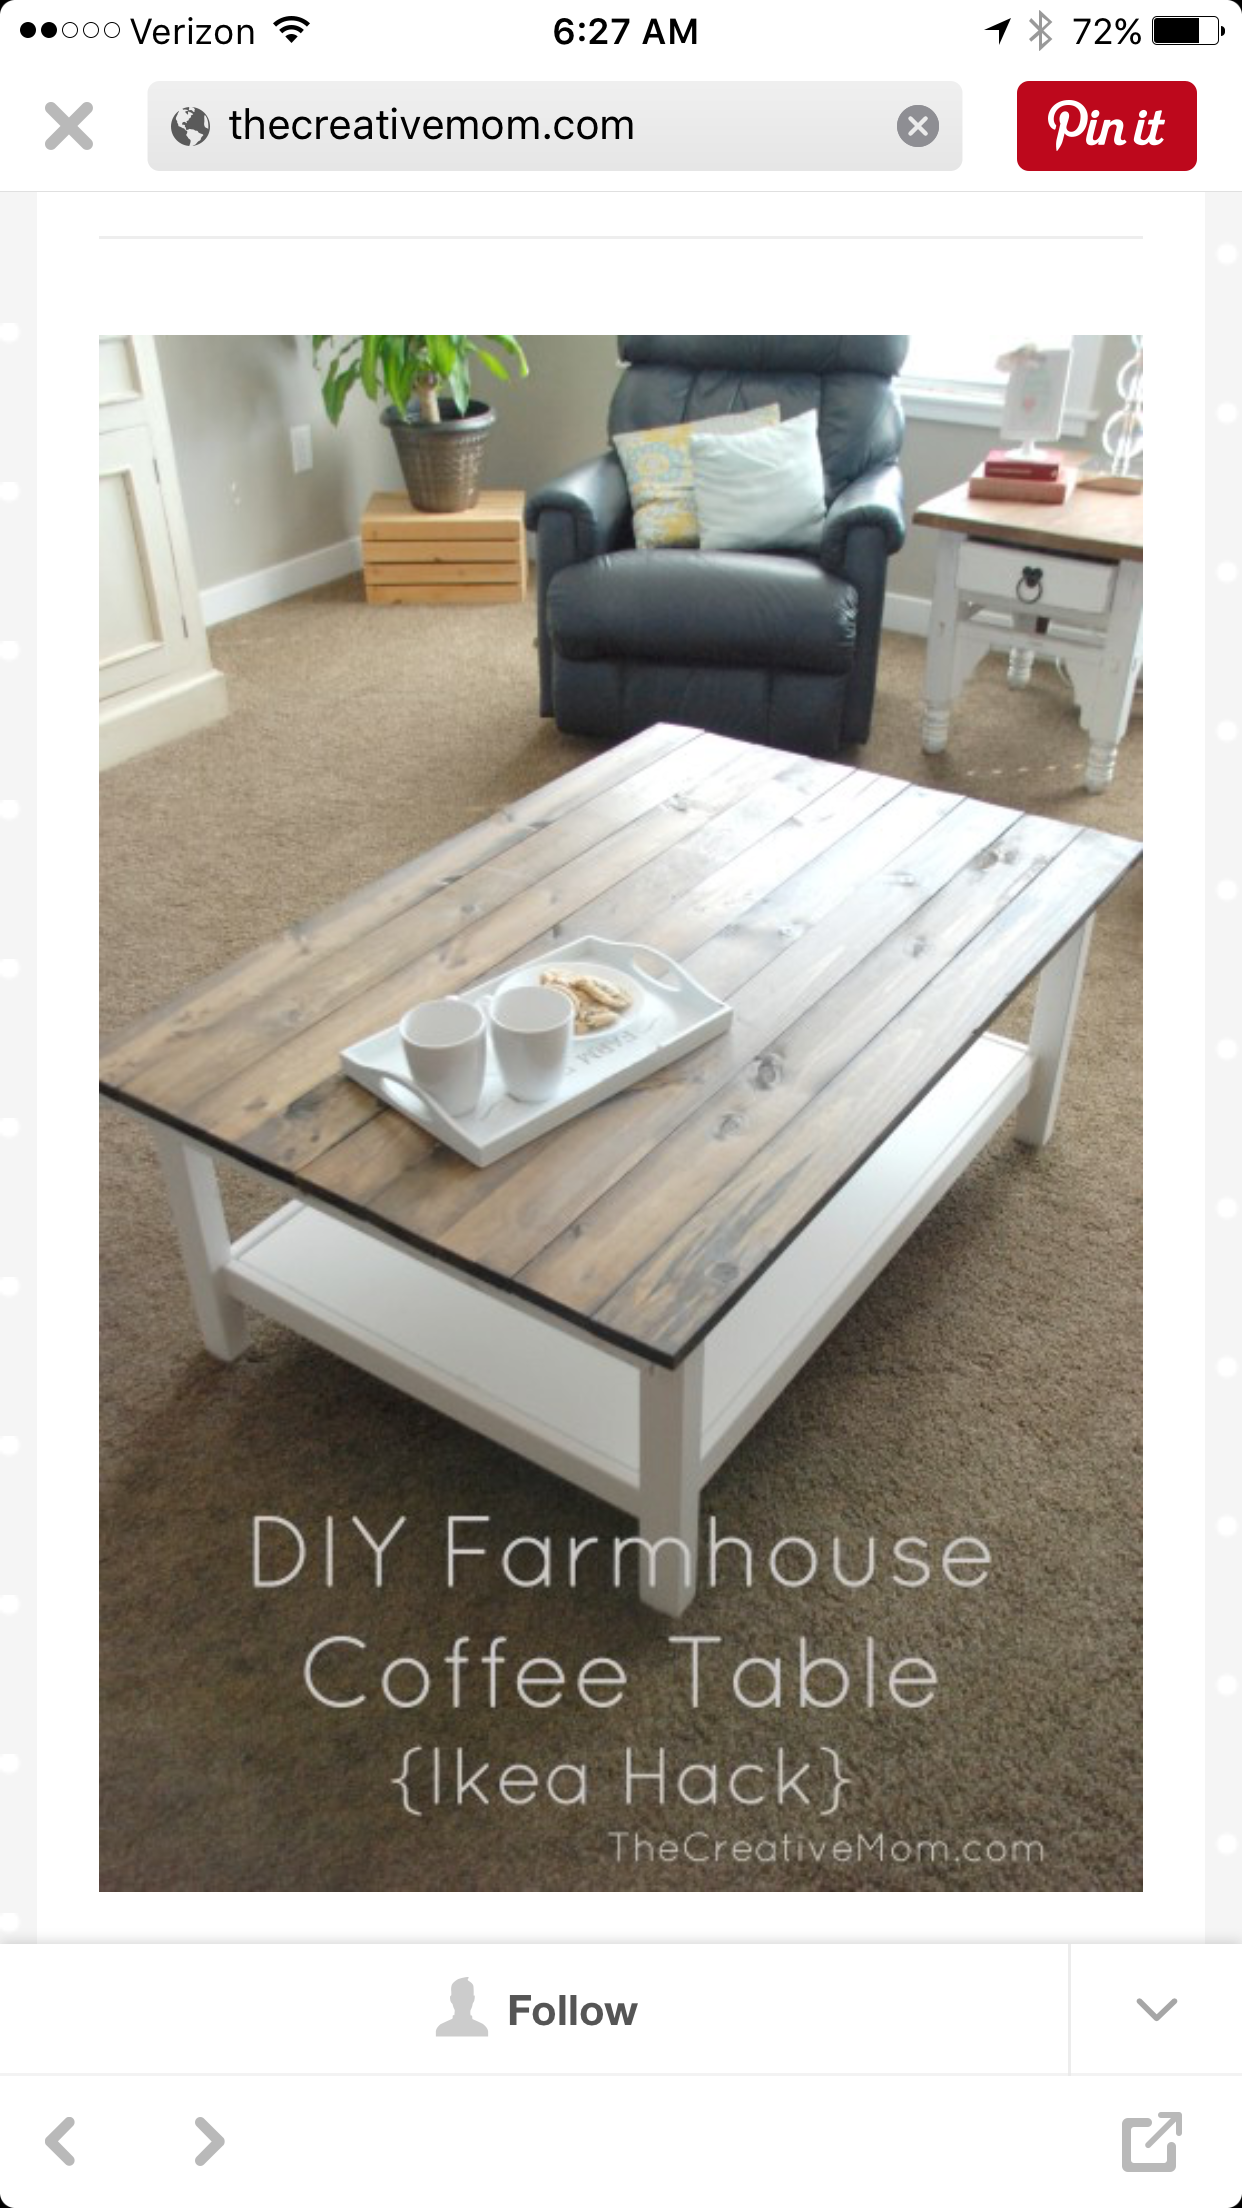 NOTE: Ideas For Dining Room Table Renovation U003du003d Ikea Hack Planked Coffee  Table